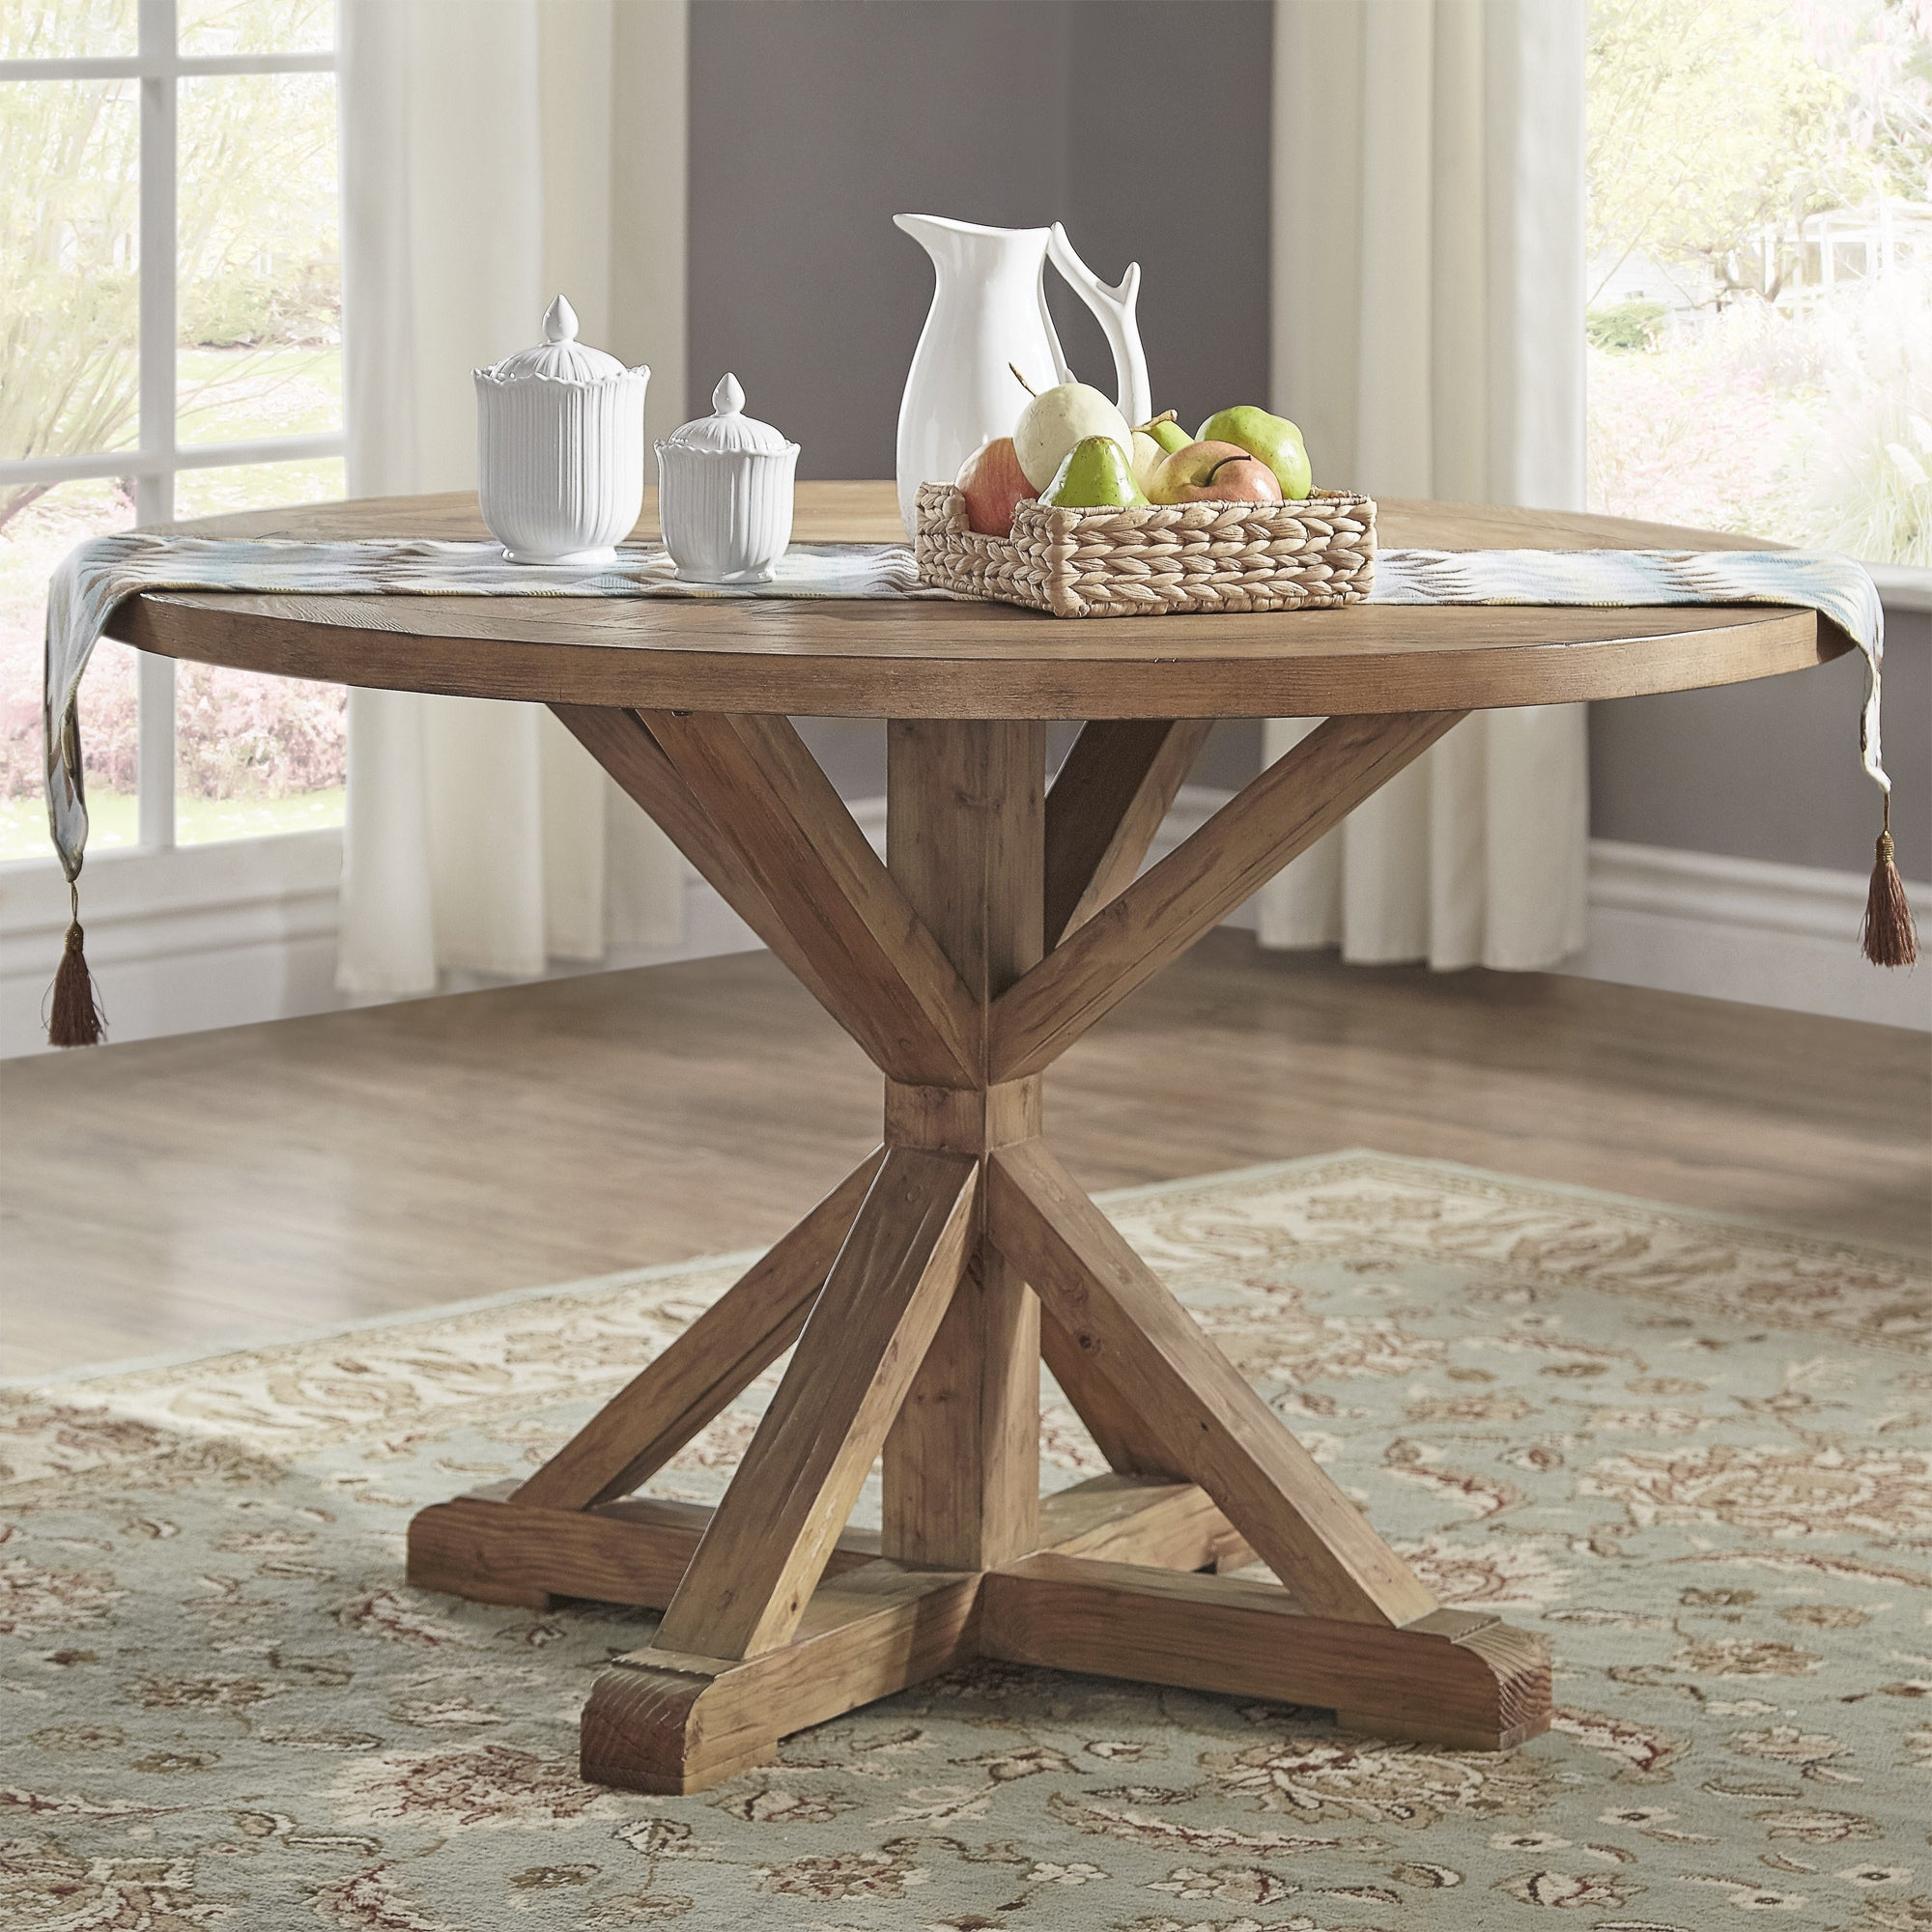 Benchwright Round Pedestal Dining Tables regarding Most Recent Benchwright Rustic X-Base 48-Inch Round Dining Table Setinspire Q  Artisan